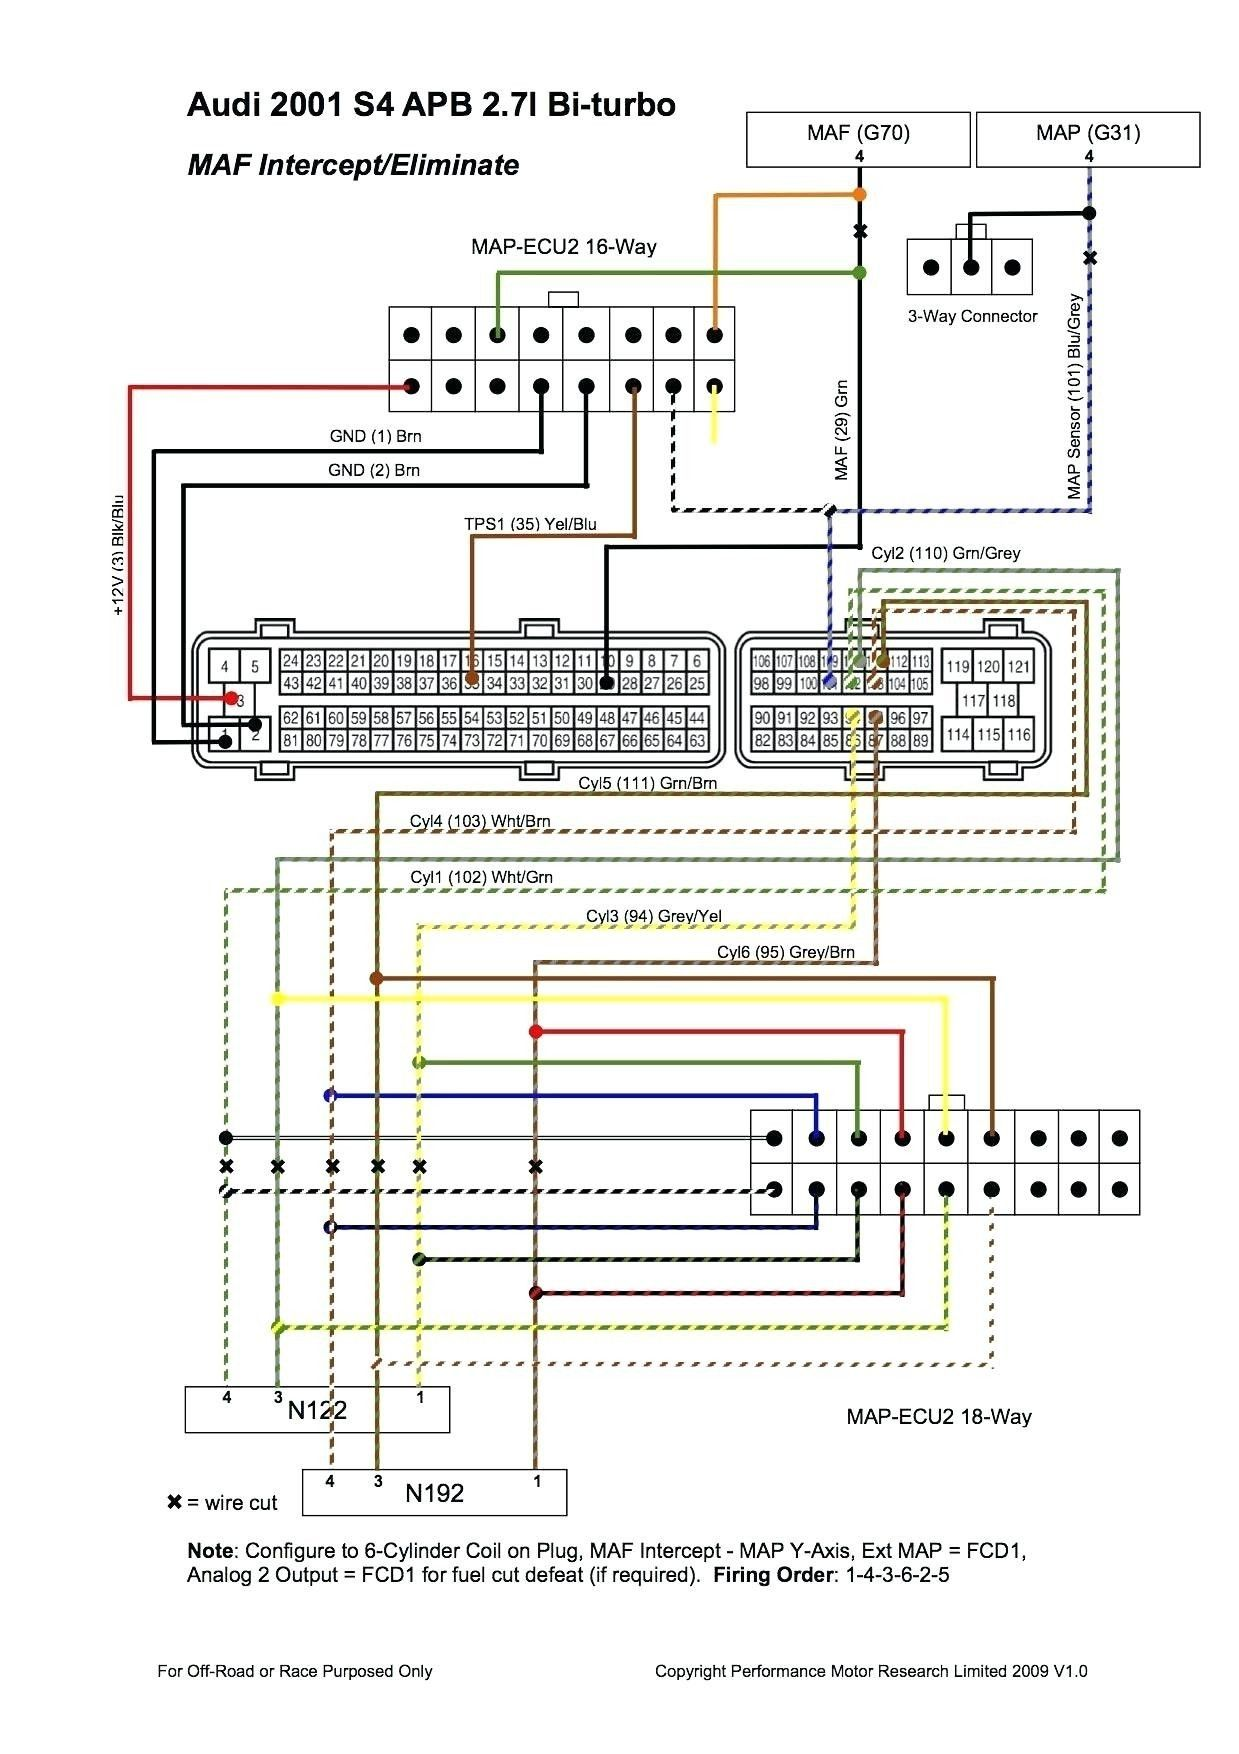 ODGG] 40 HONDA RADIO WIRING DIAGRAM [AG40U]   LAYOUT VENUS   LAYOUT ...